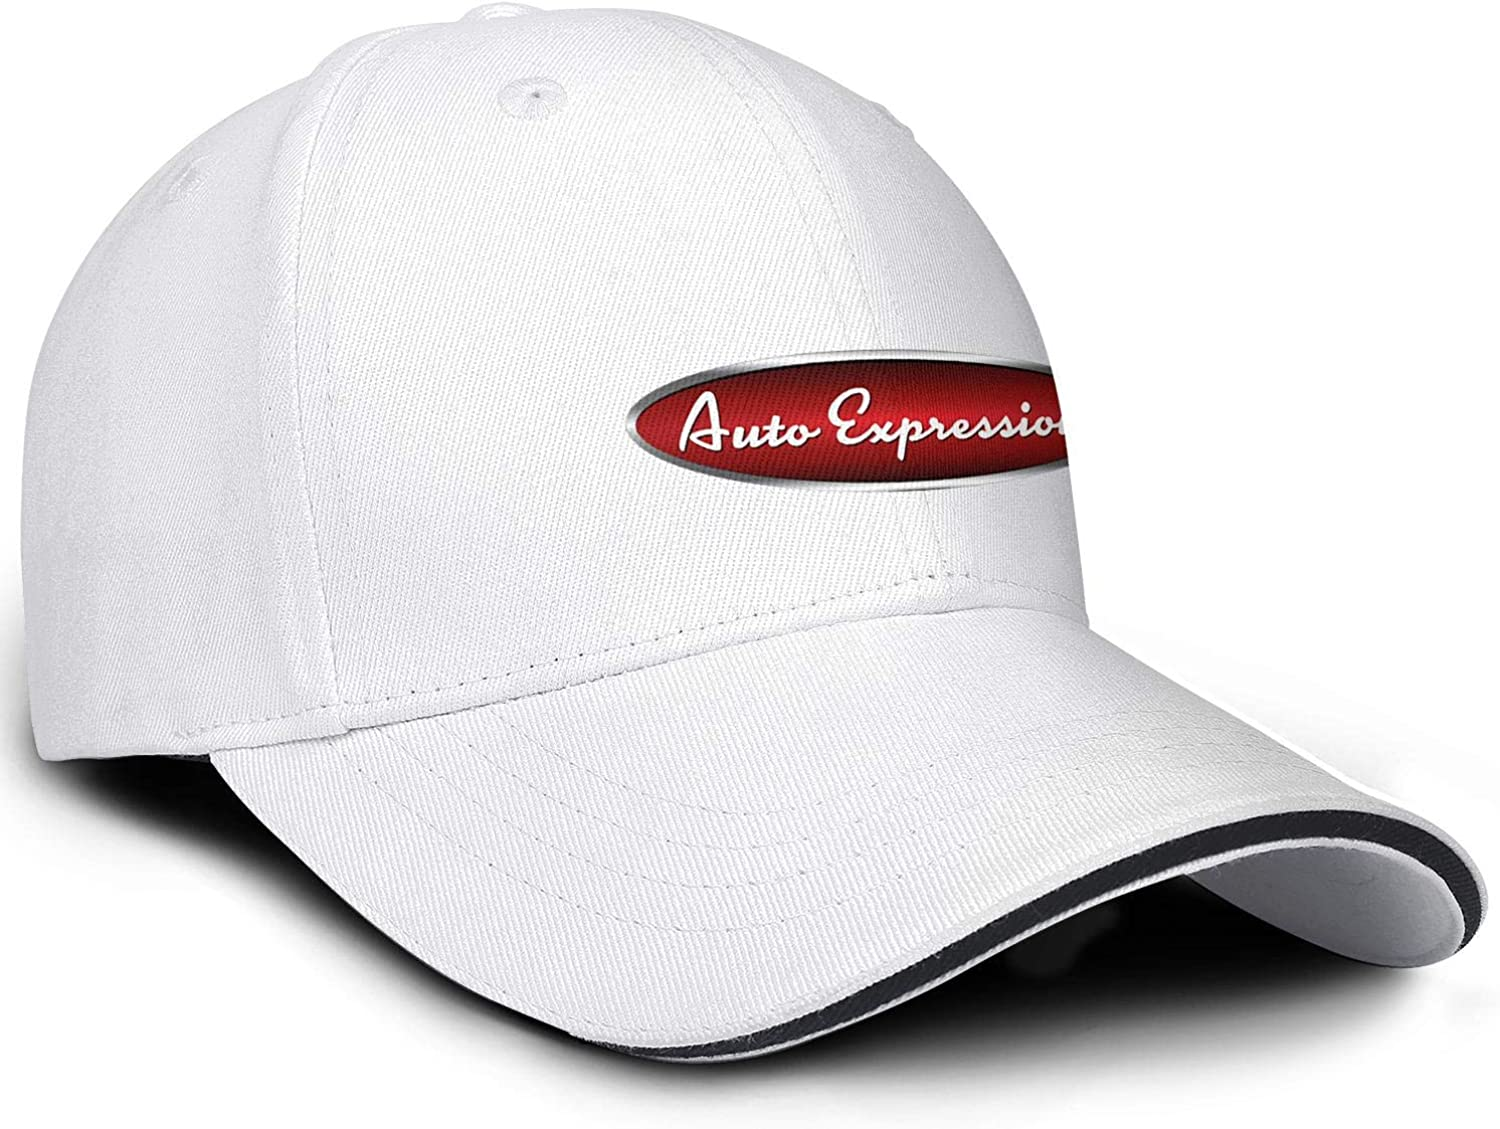 Auto Expressions Branding Mens Cotton Baseball Hat Women Relaxed Dad Hats